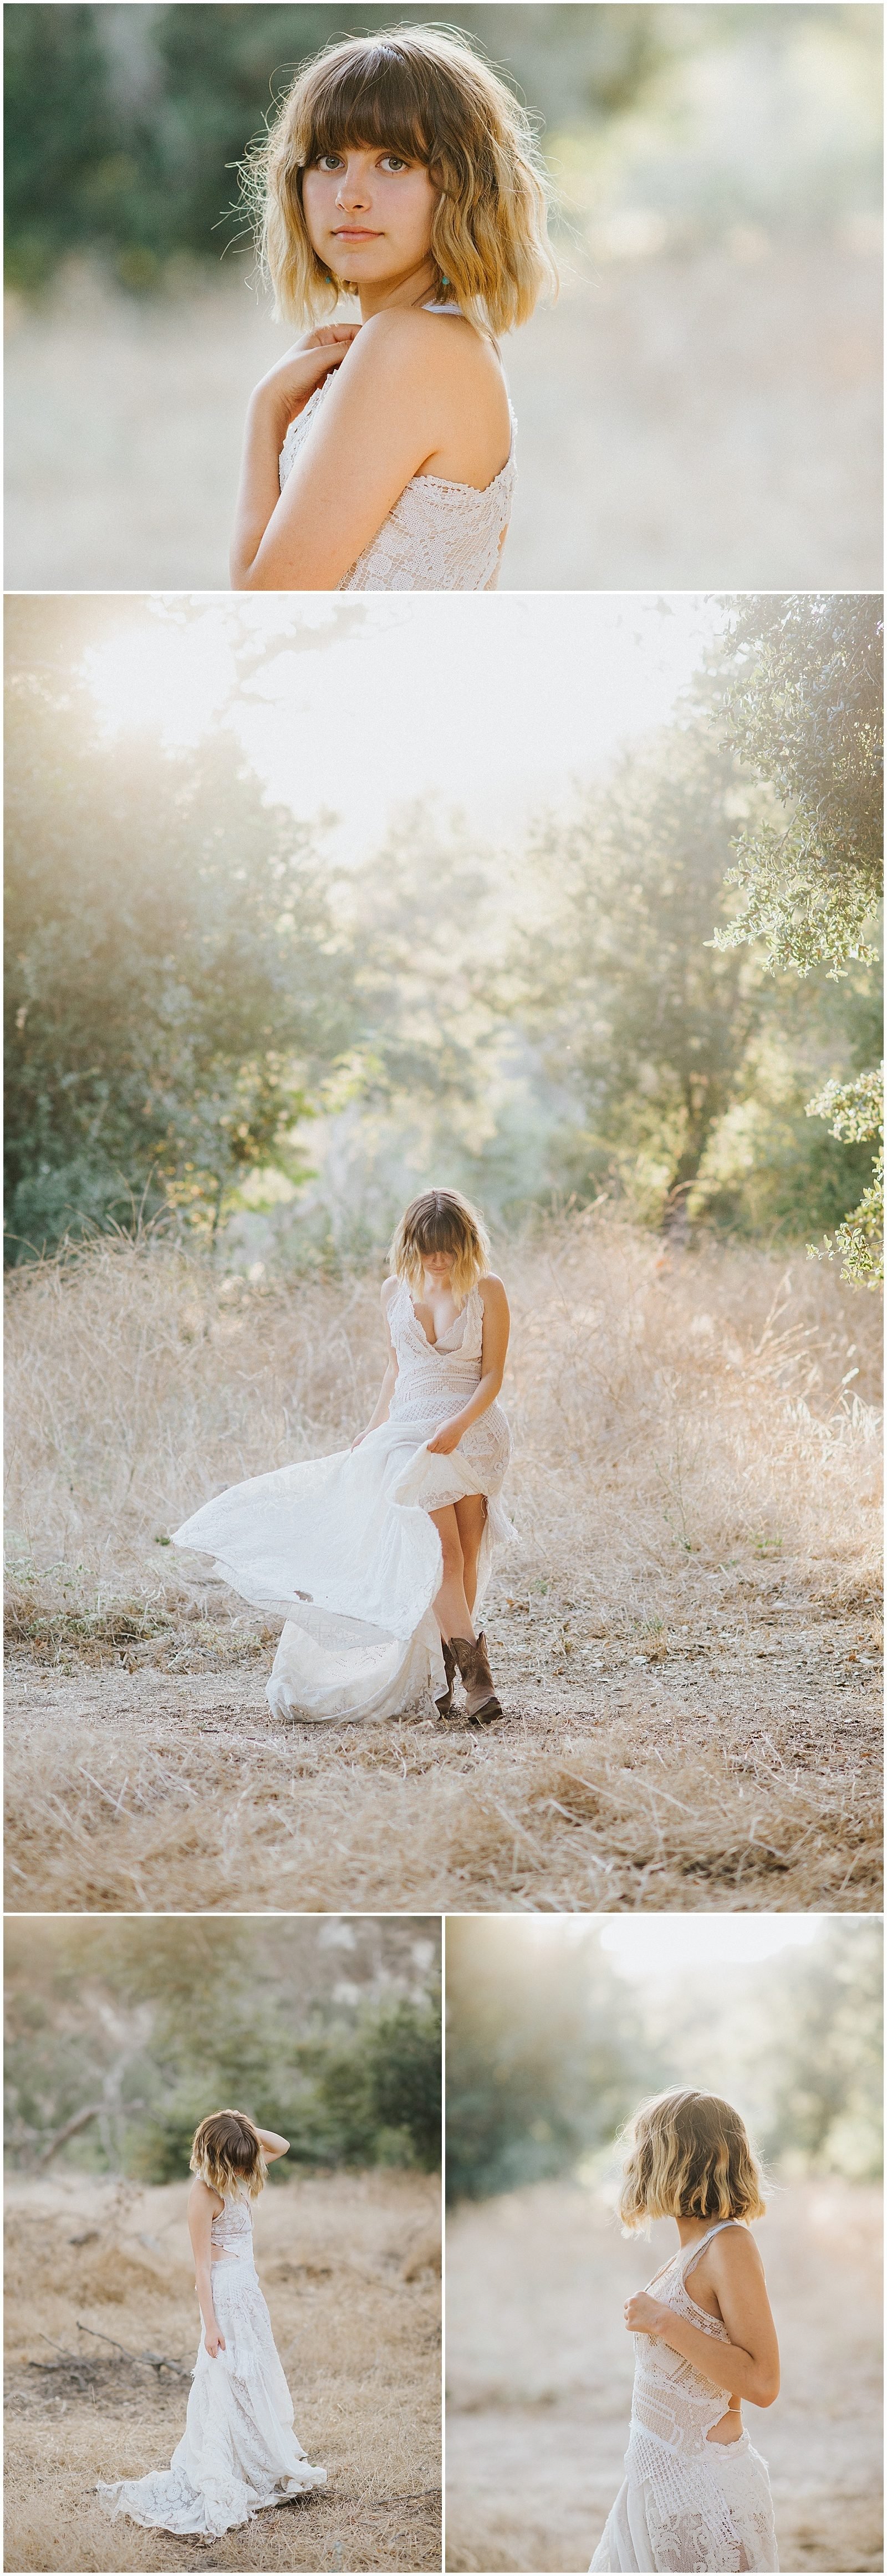 Orange County Family Photographer Travelling Reclamation Dress 0258